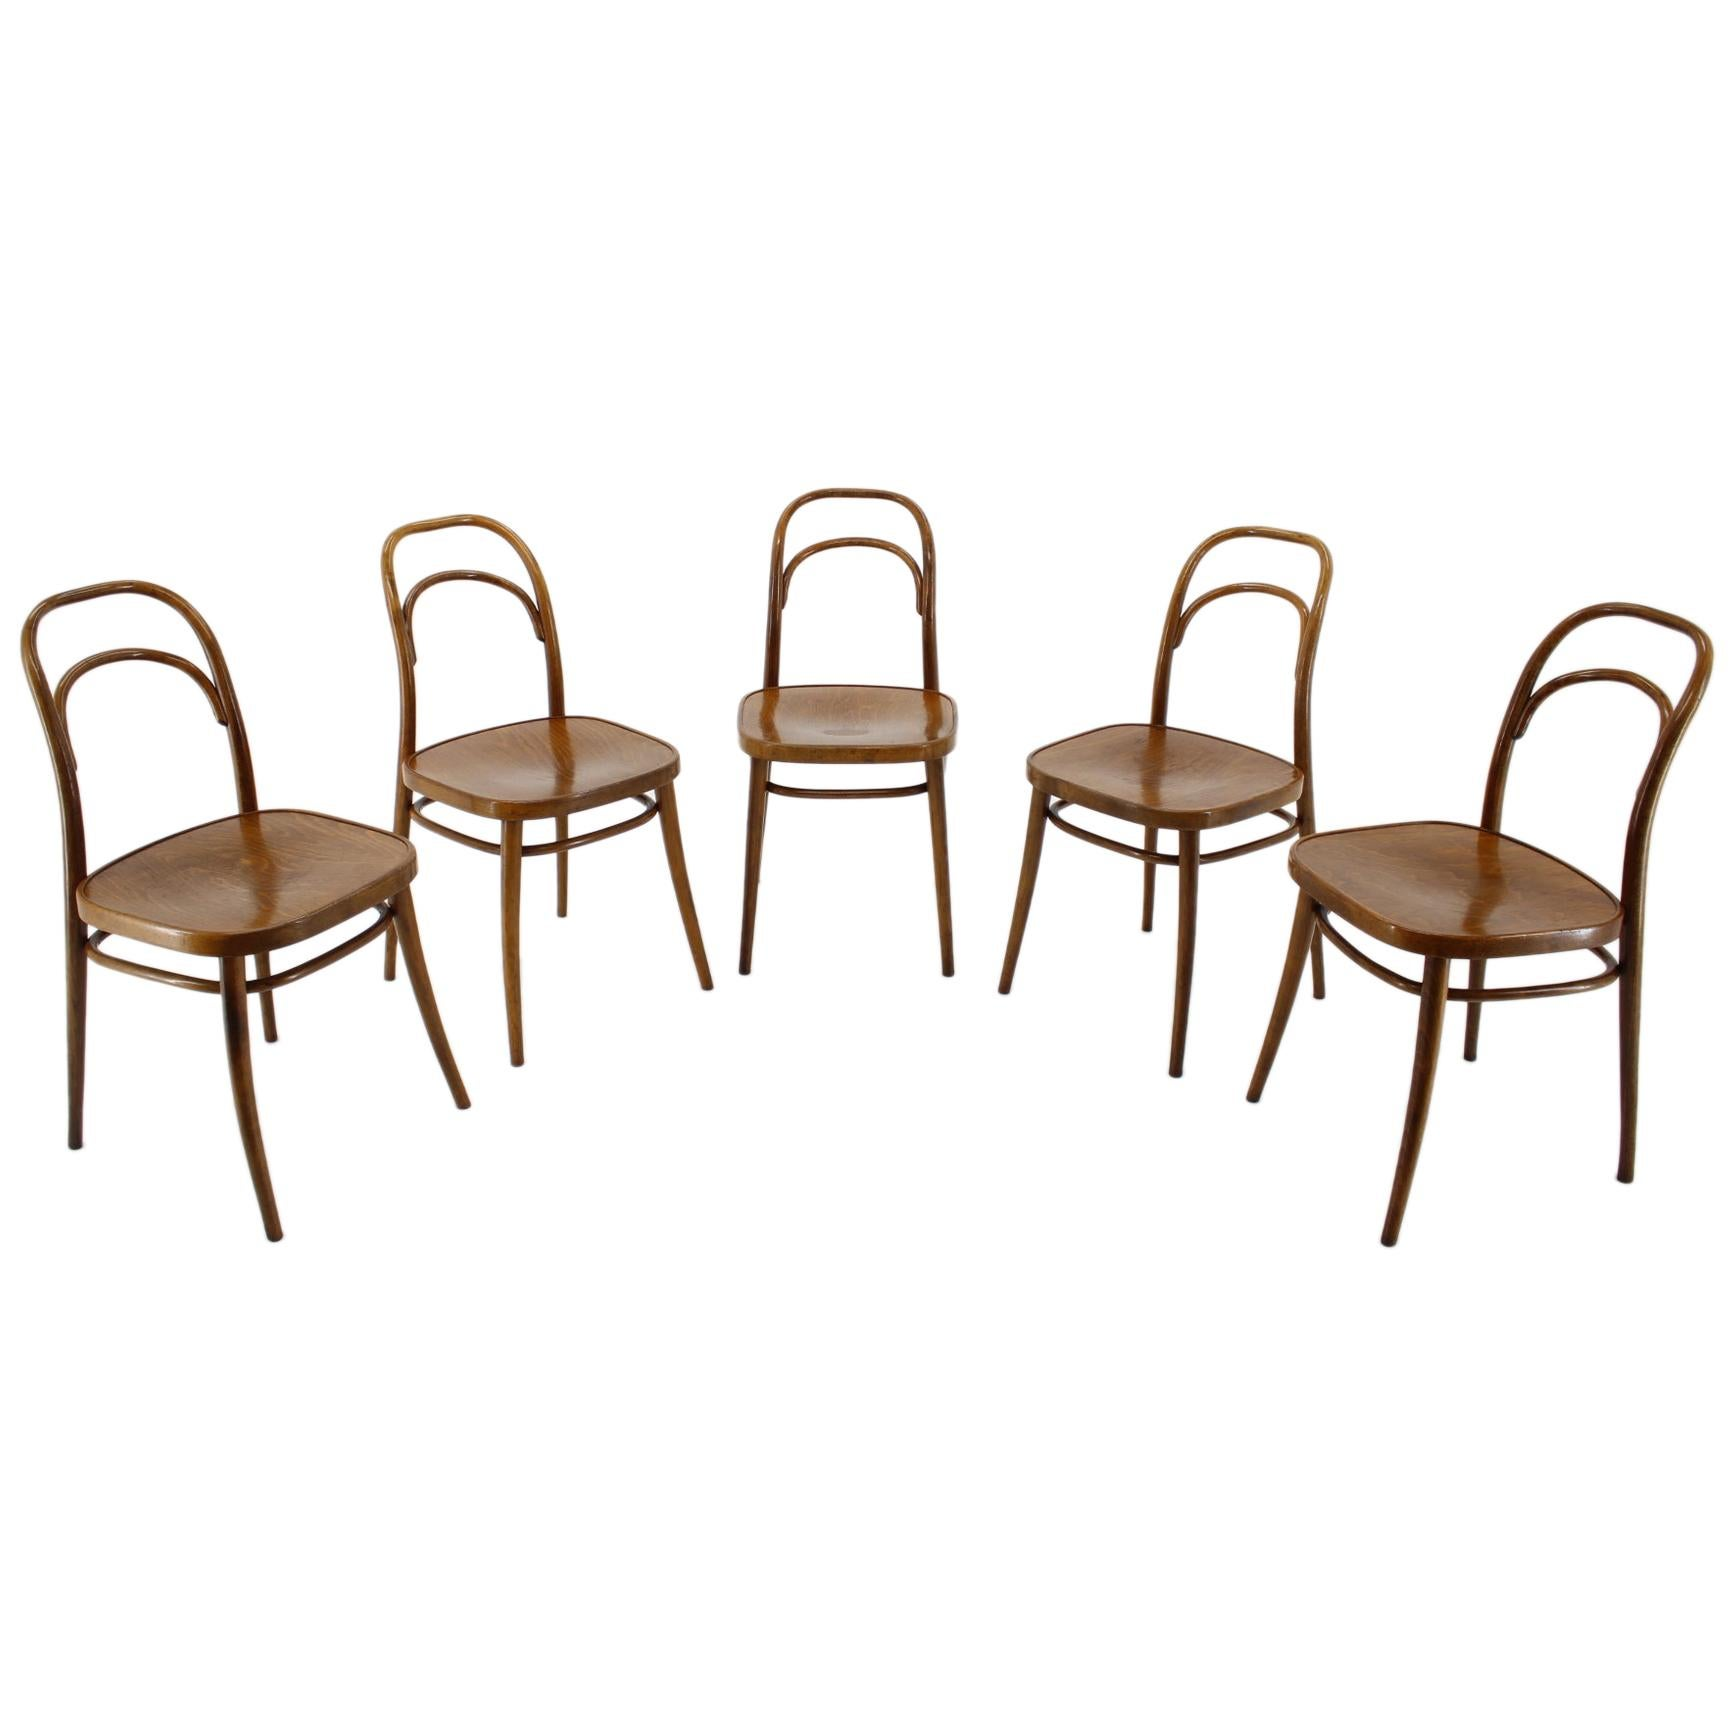 Set of Four Dining Chairs Ton, Designed by Antonín Šuman, 1960